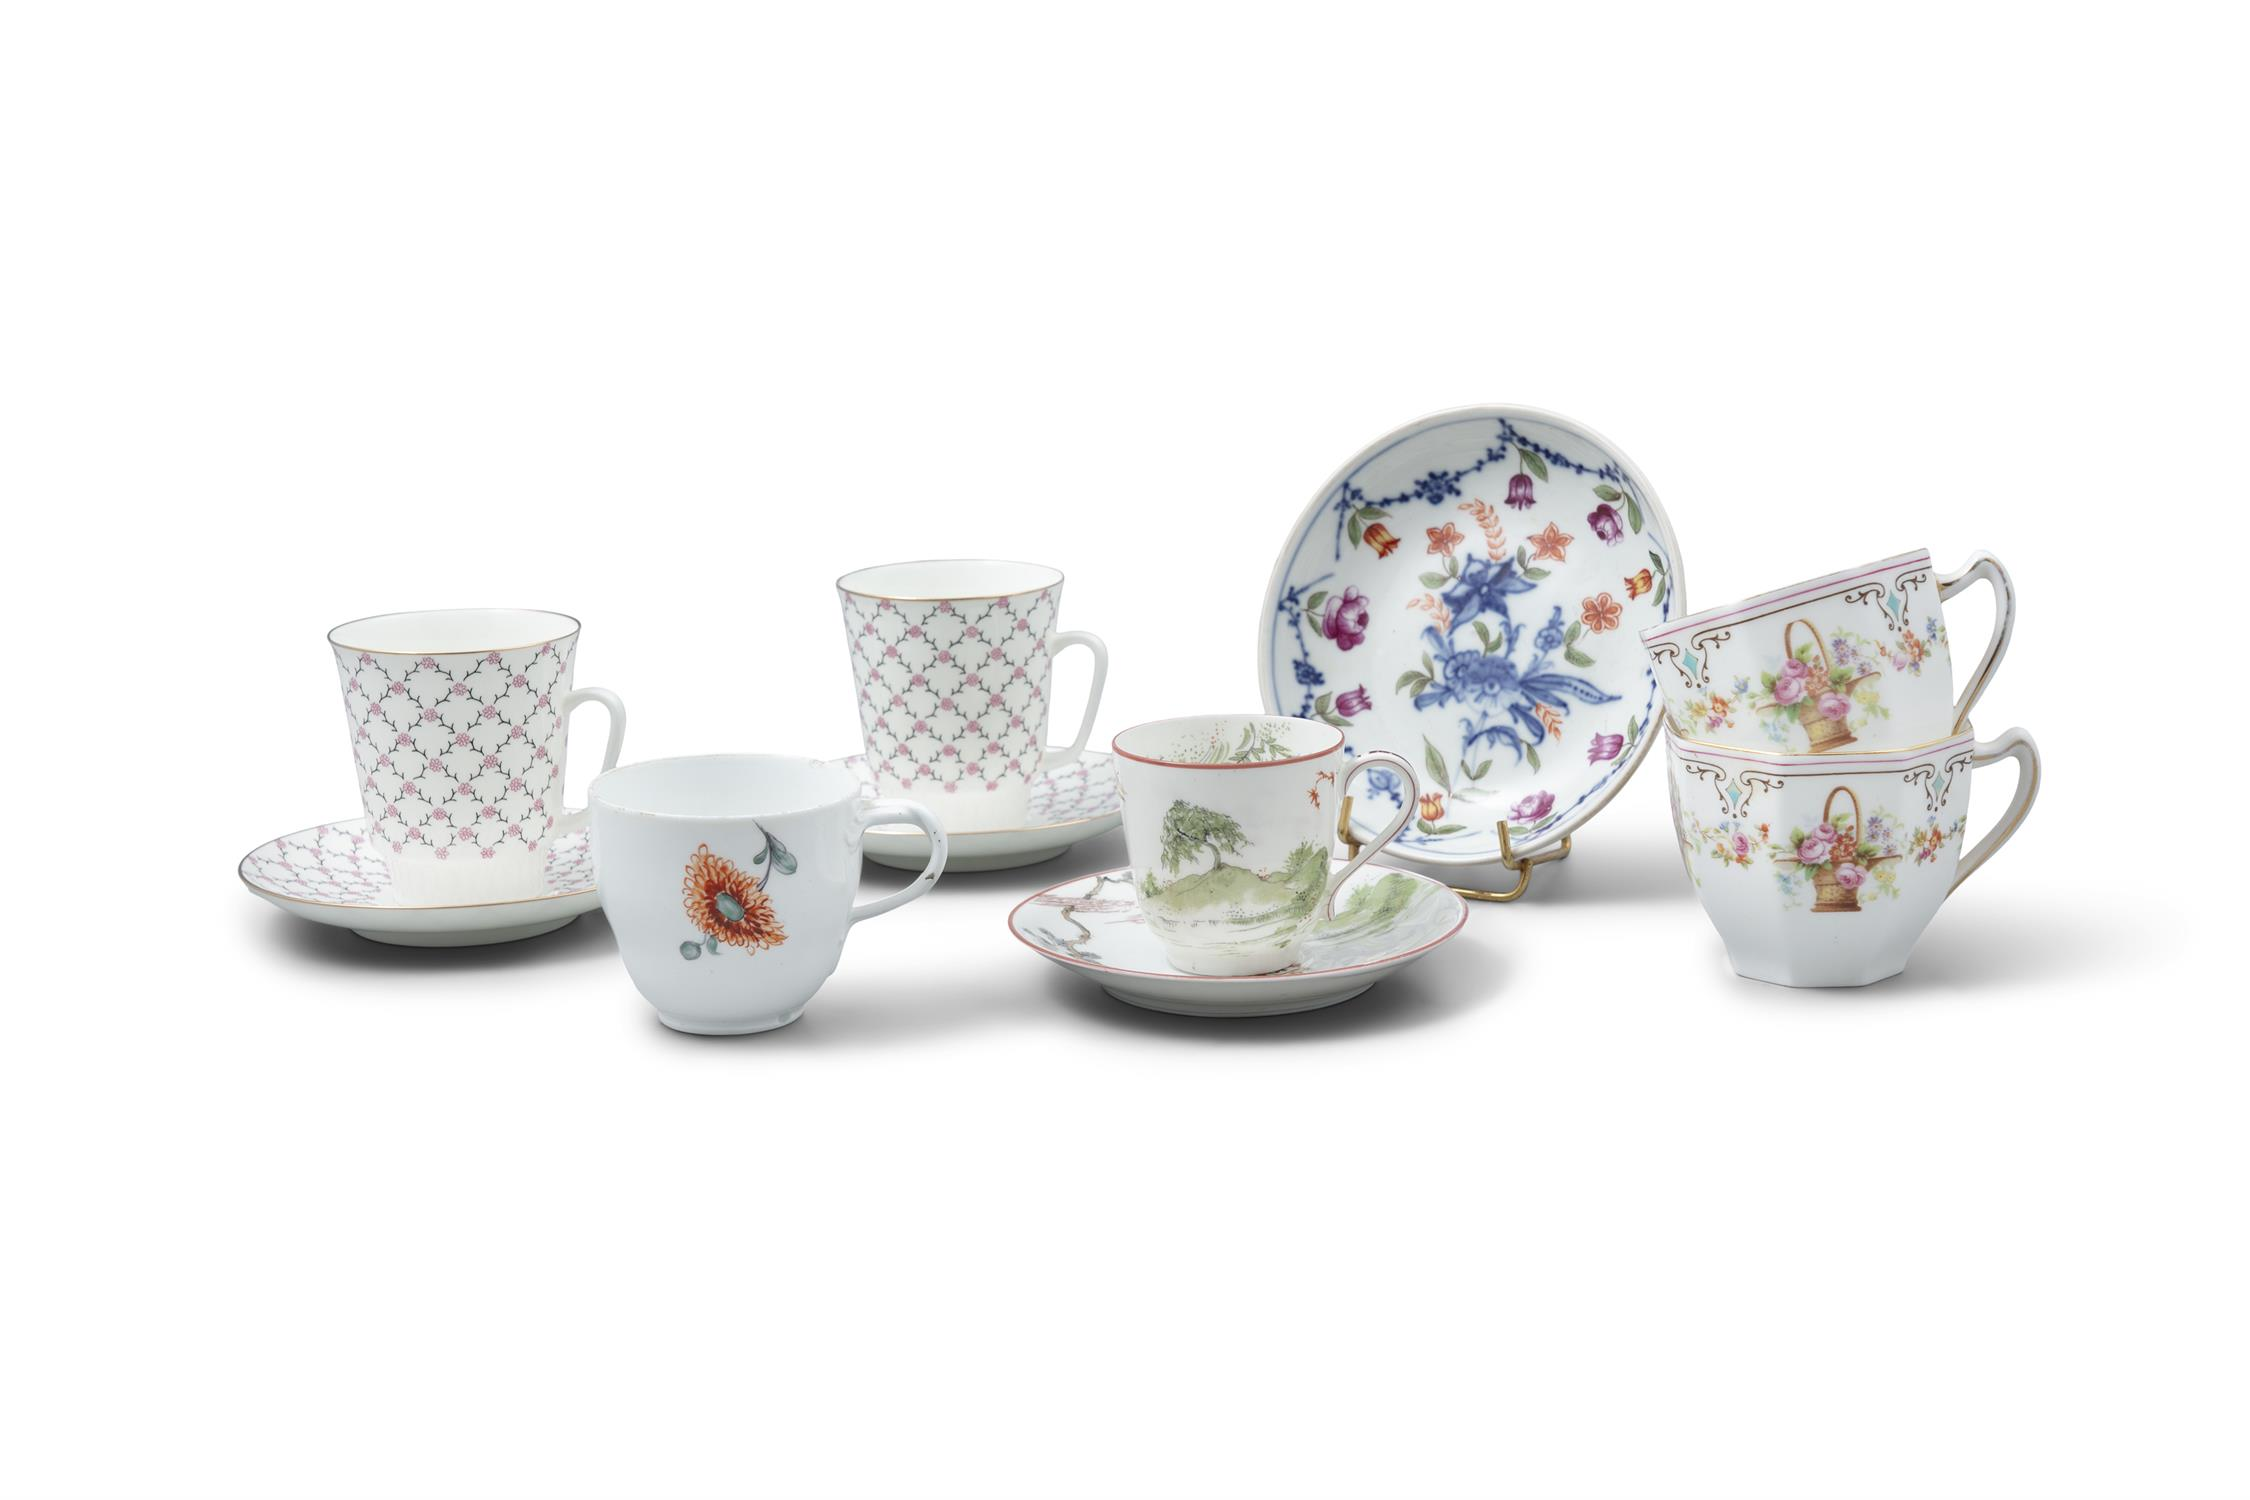 A PAIR OF RUSSIAN PORCELAIN COFFEE CUPS AND SAUCERS, Saint Petersburg 'Imperial Porcelain',